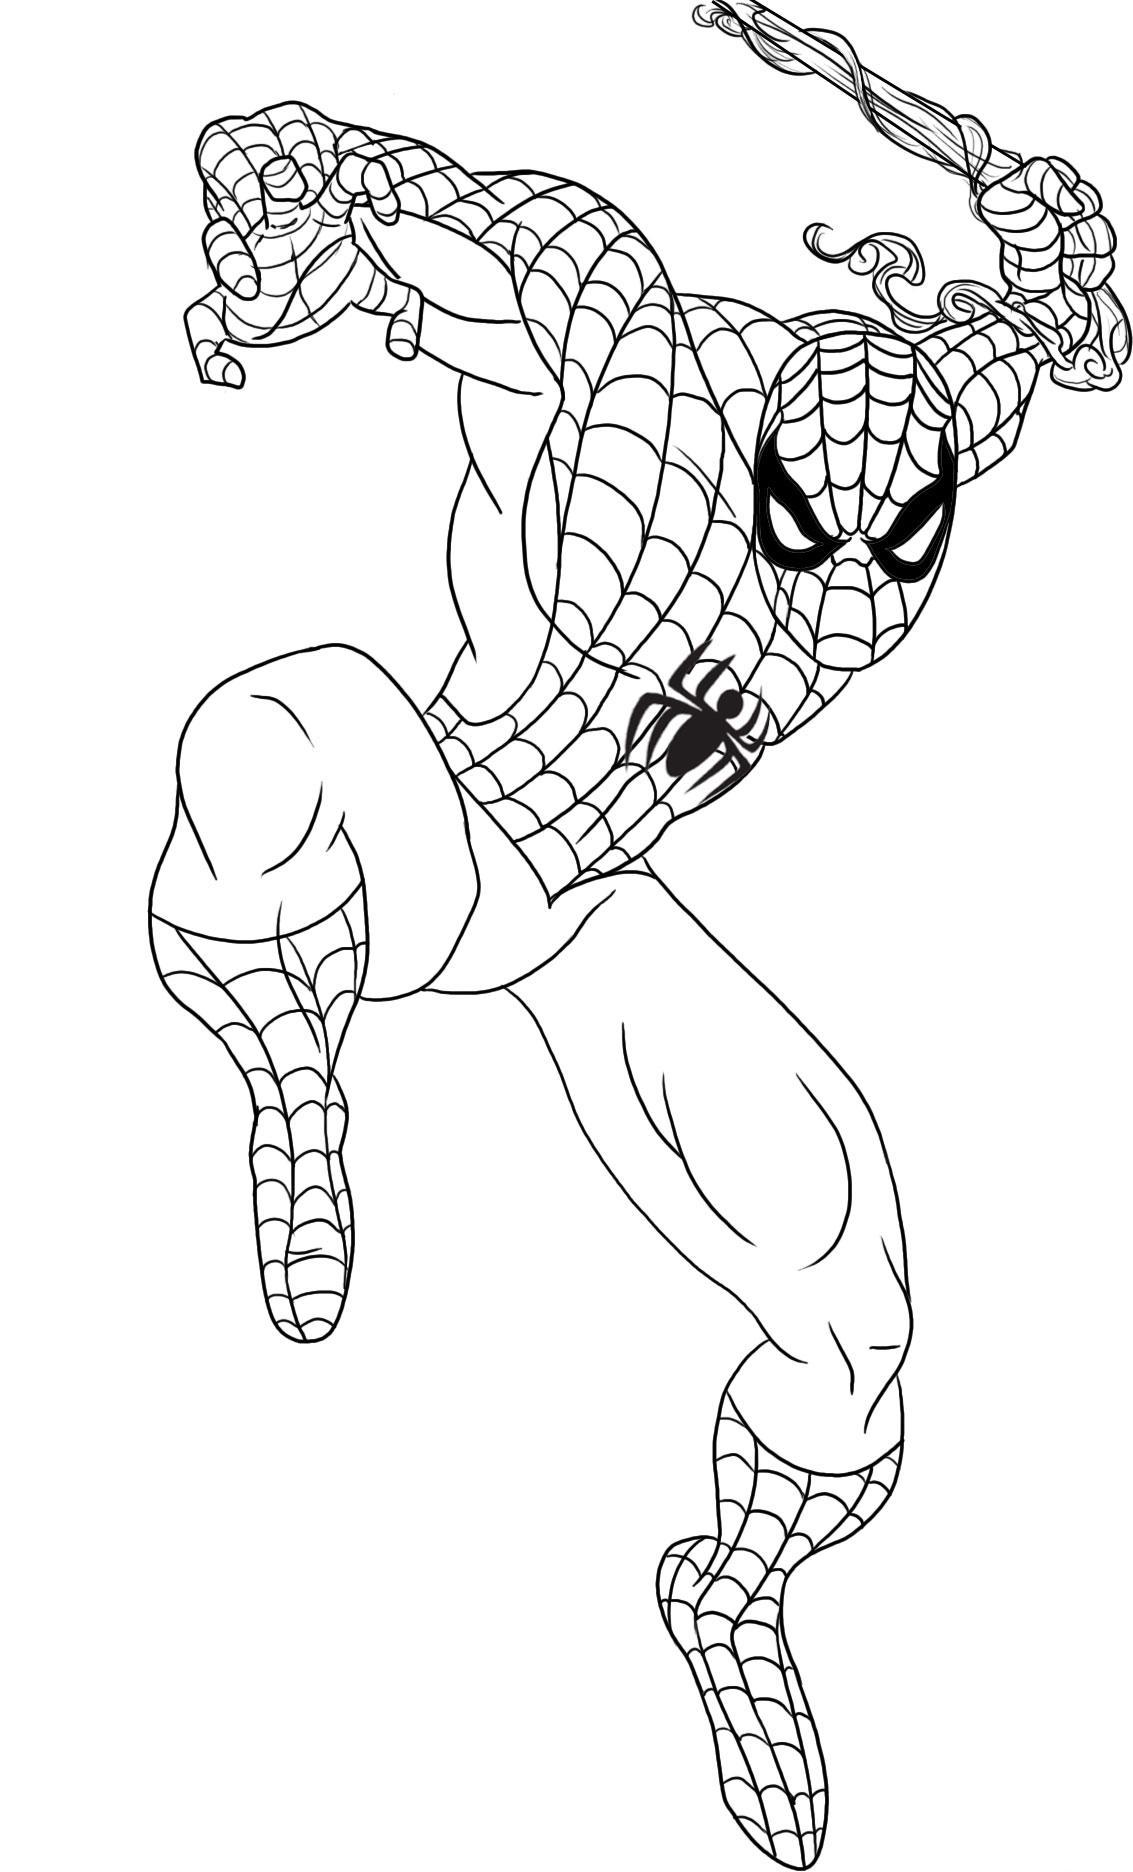 Free printable spiderman coloring pages for kids for Fun coloring pages for kids